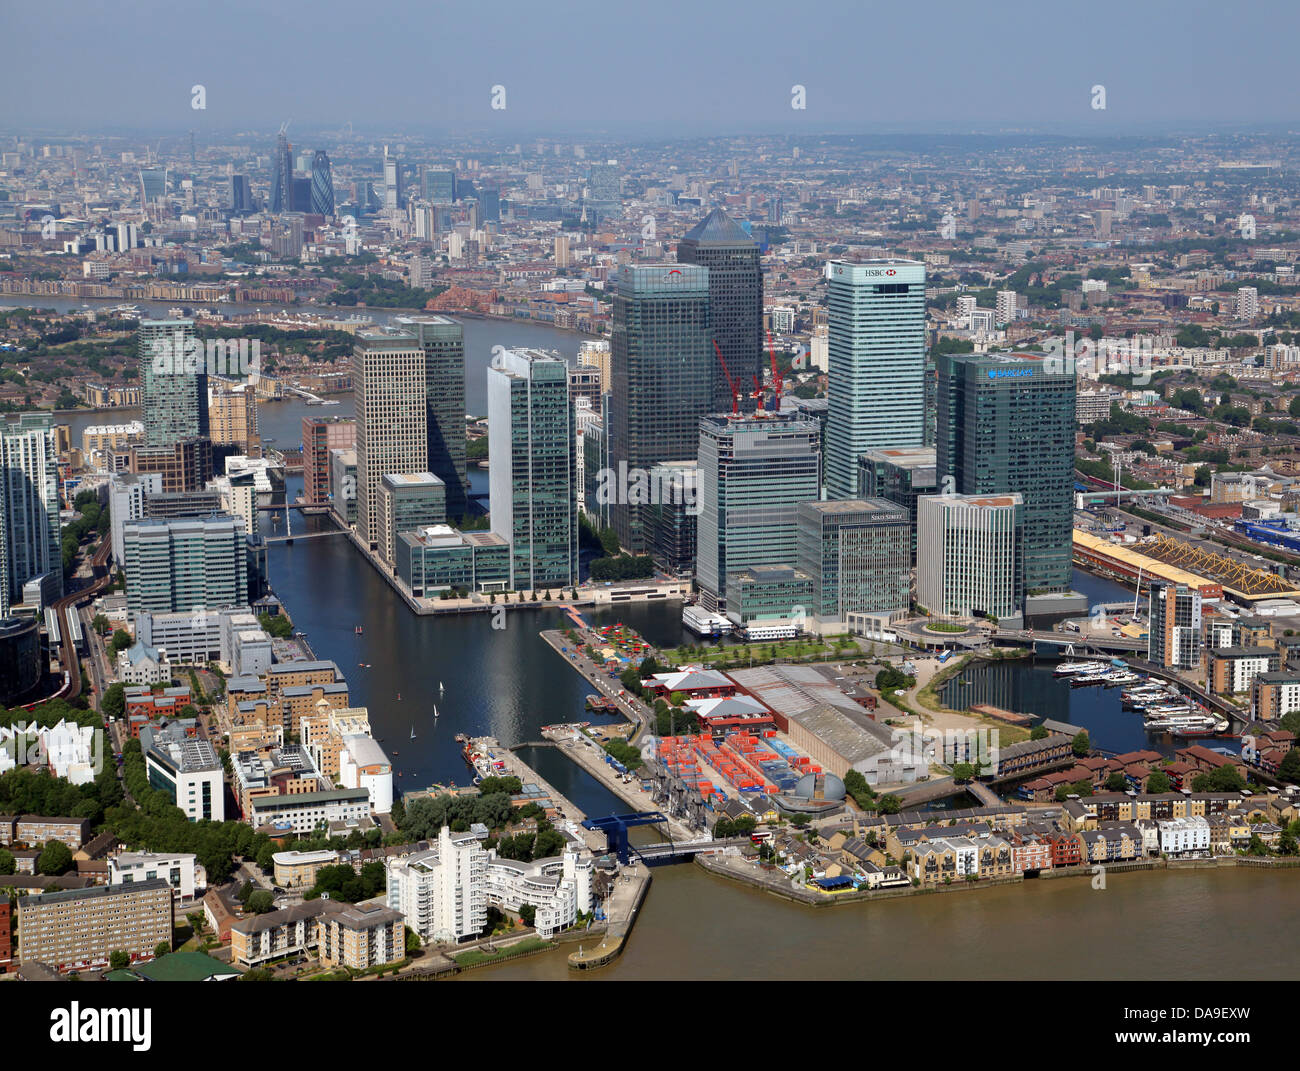 aerial view of Canary Wharf, Docklands, London, UK - Stock Image